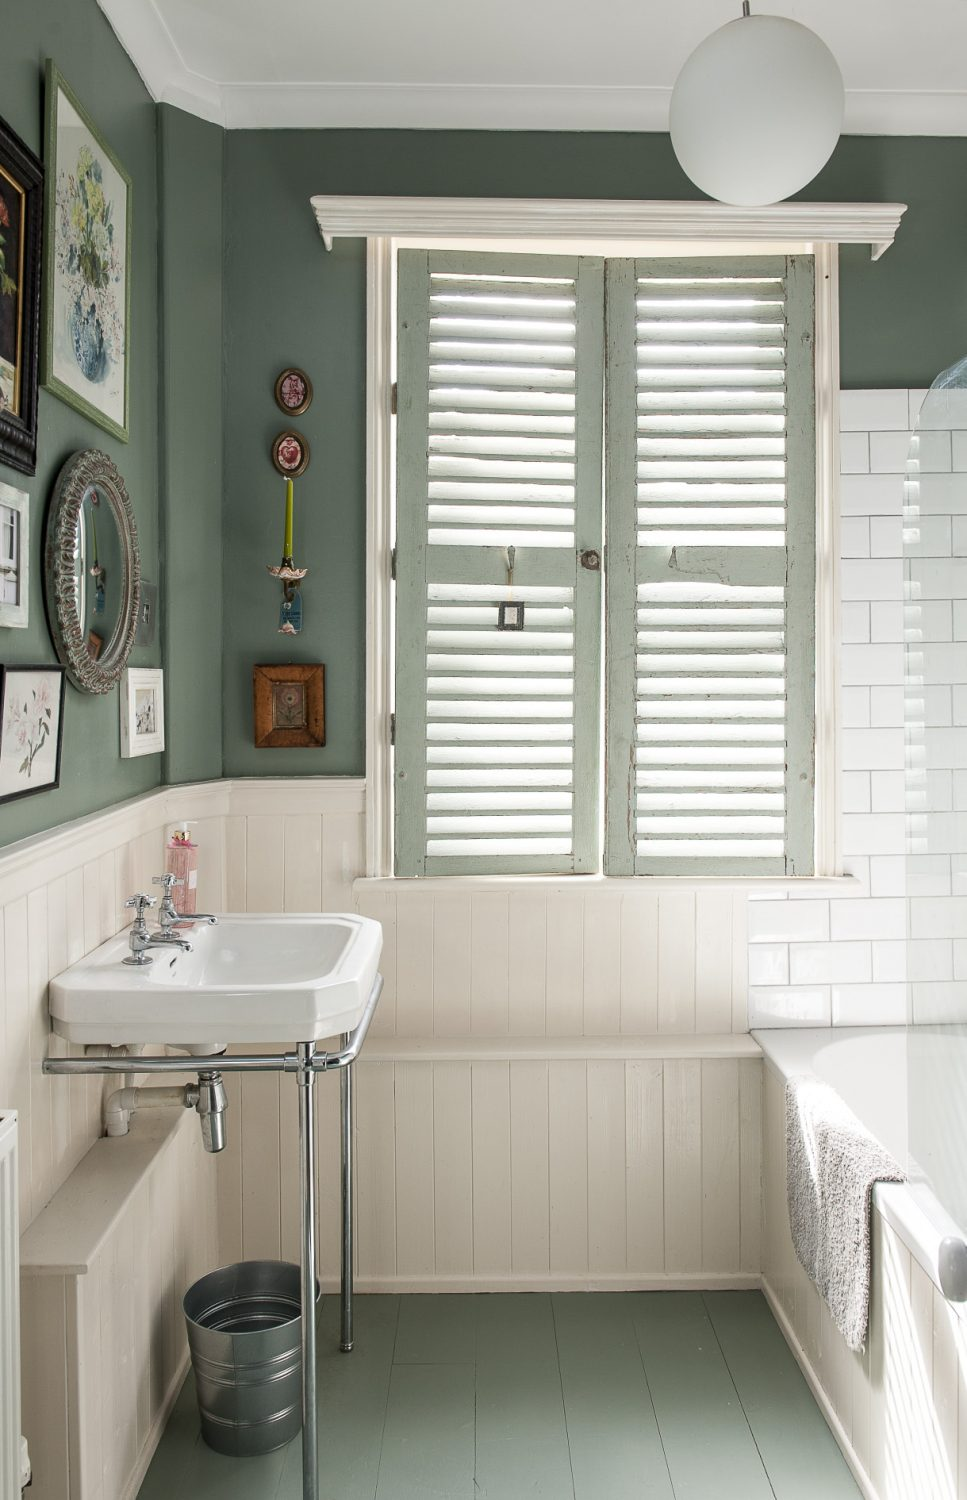 On the first floor, the family bathroom and loo are painted a mossy green and nautical blue, lined with off-white wood panelling